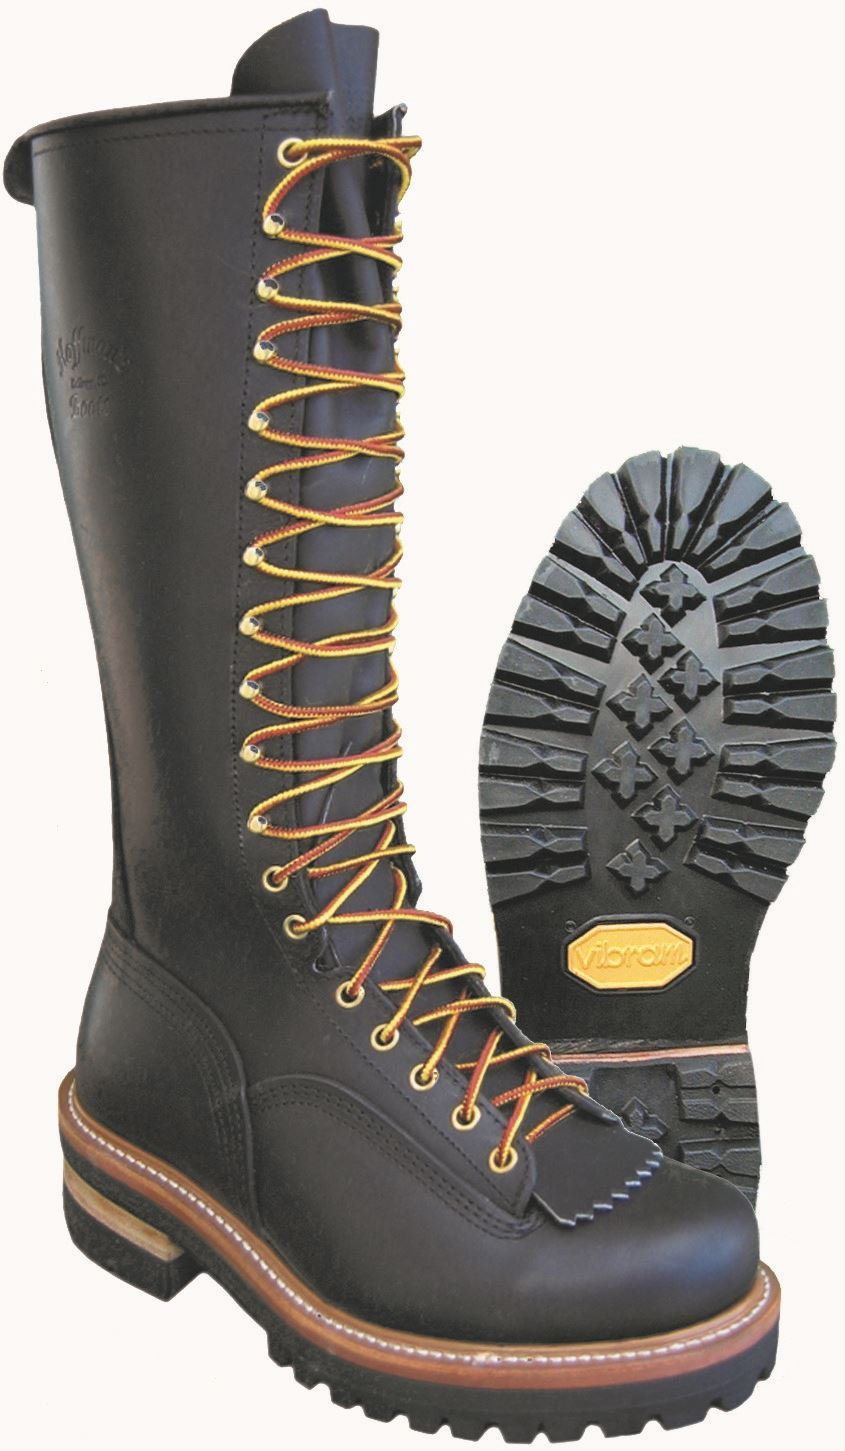 16 Quot Pole Climber Boots Hoffman Boots For All Your Boot